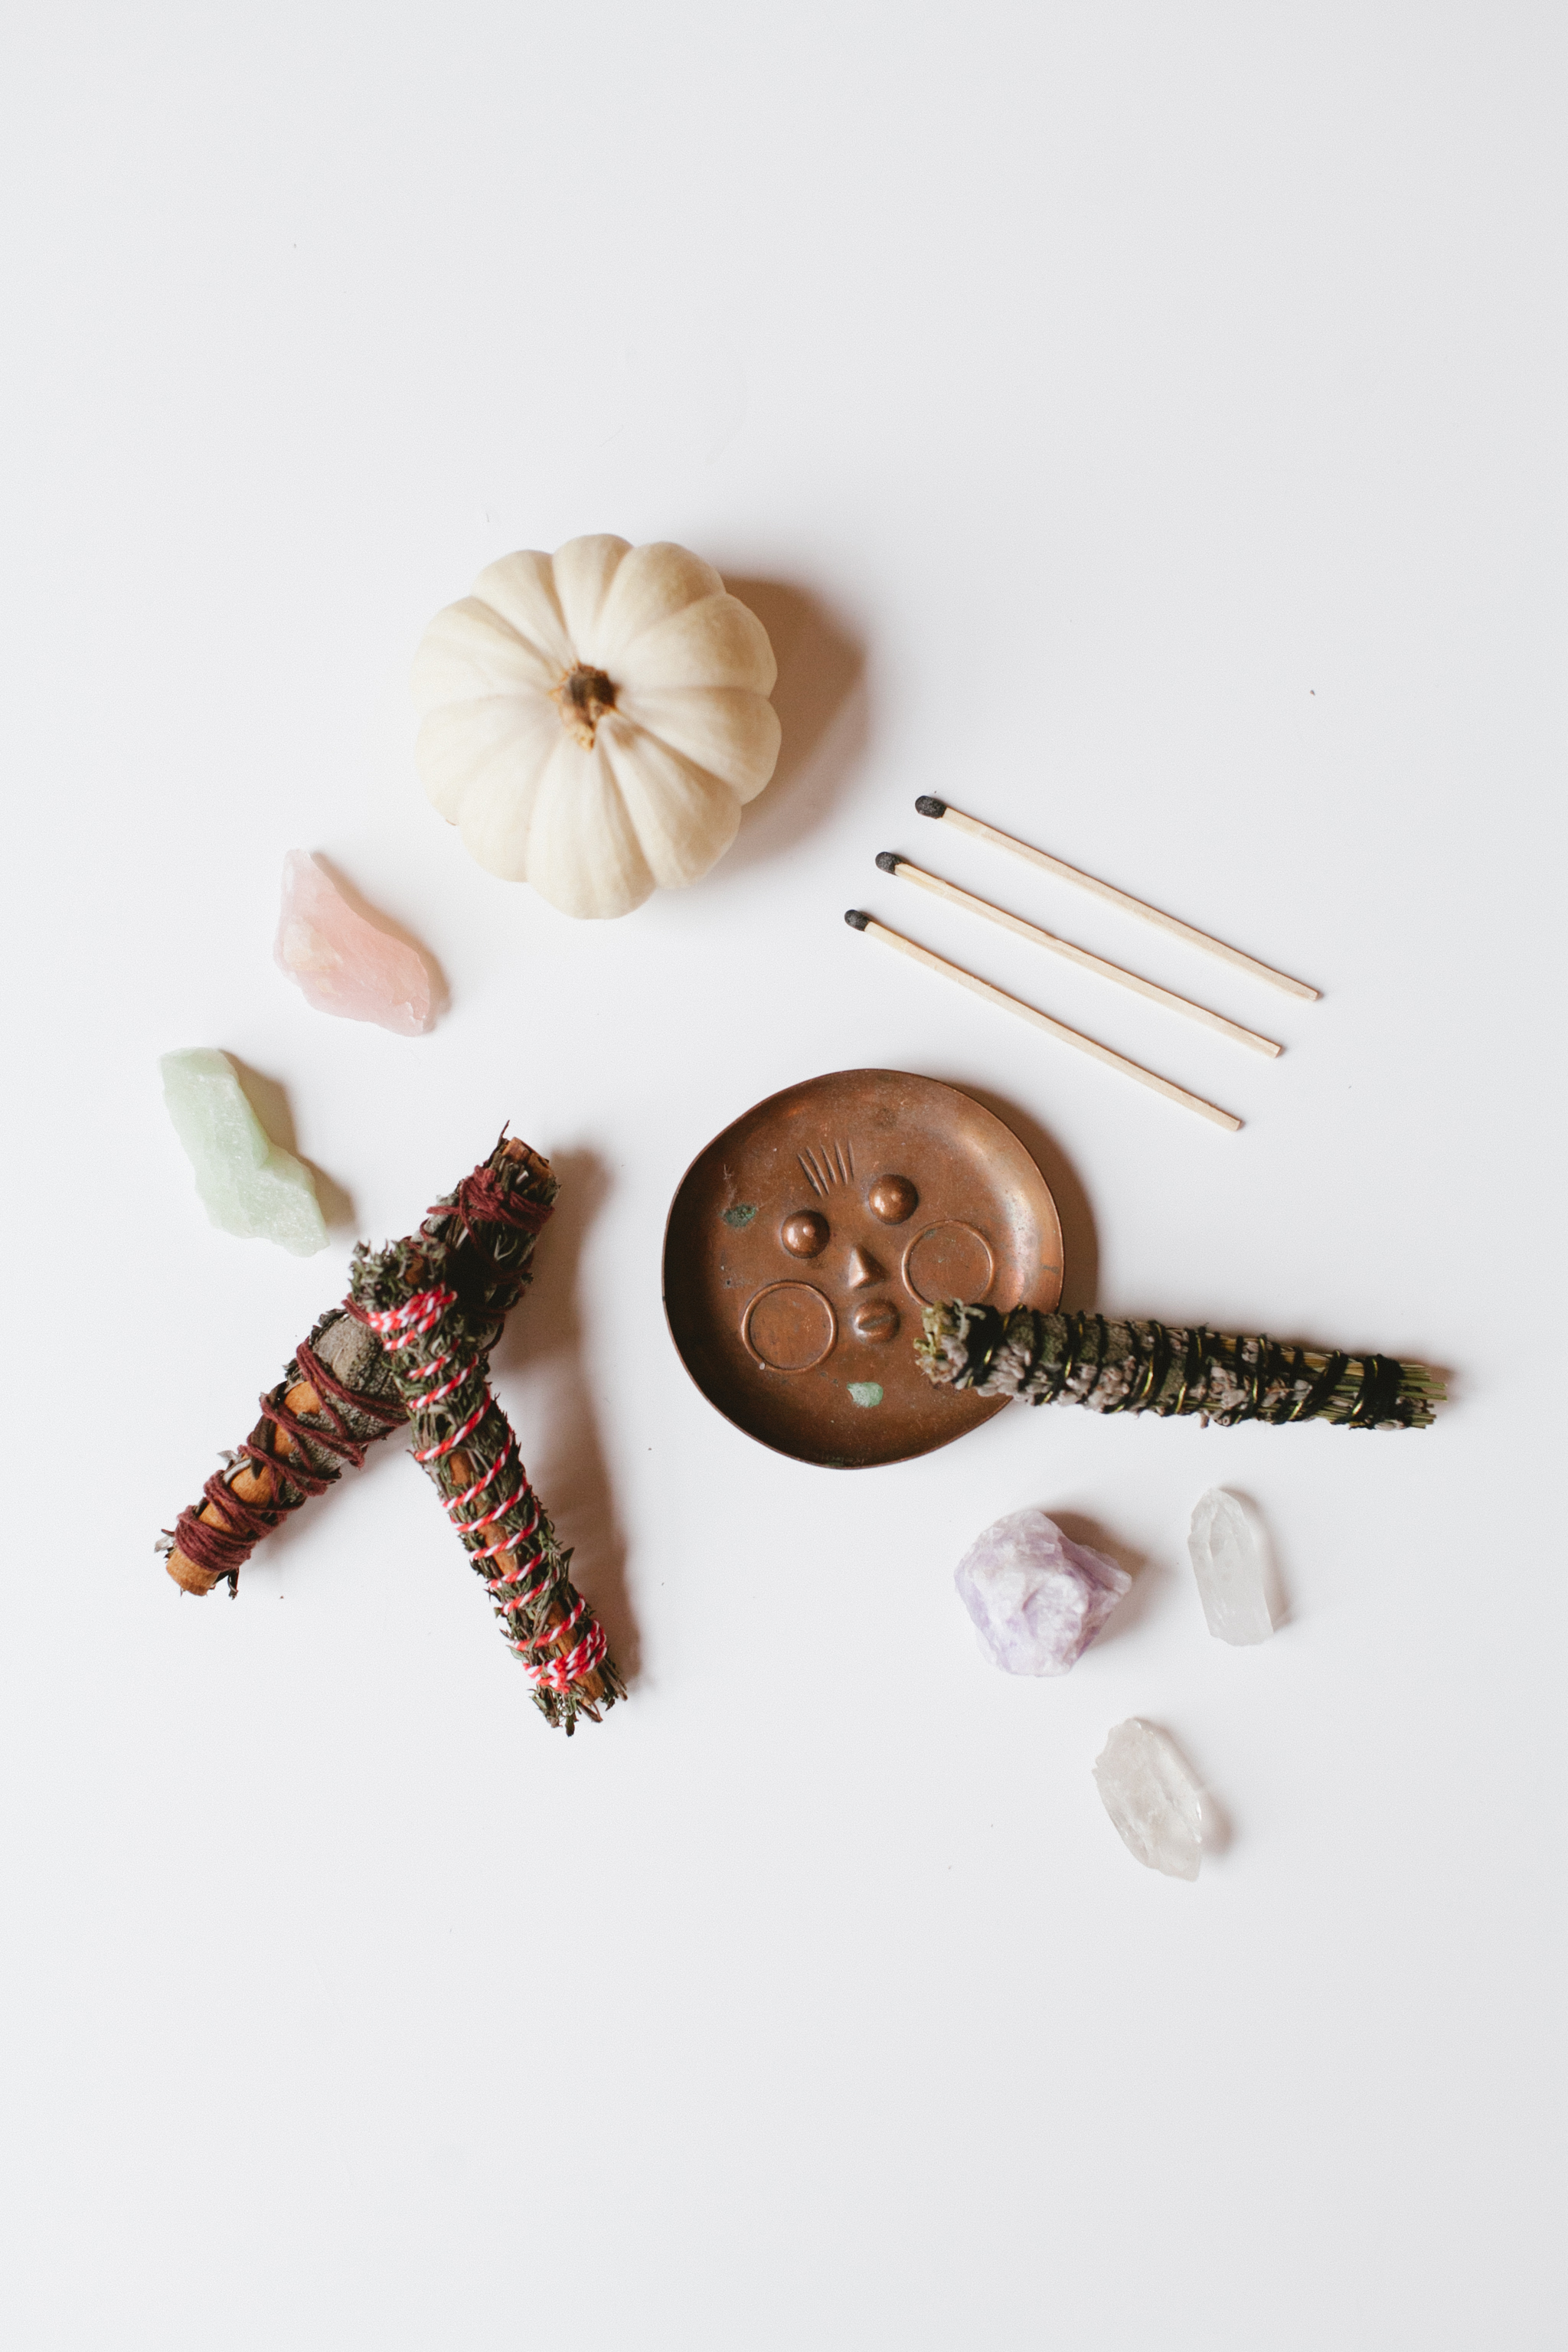 DIY Smudge Sticks Inspired by Autumn & Fall | Jojotastic